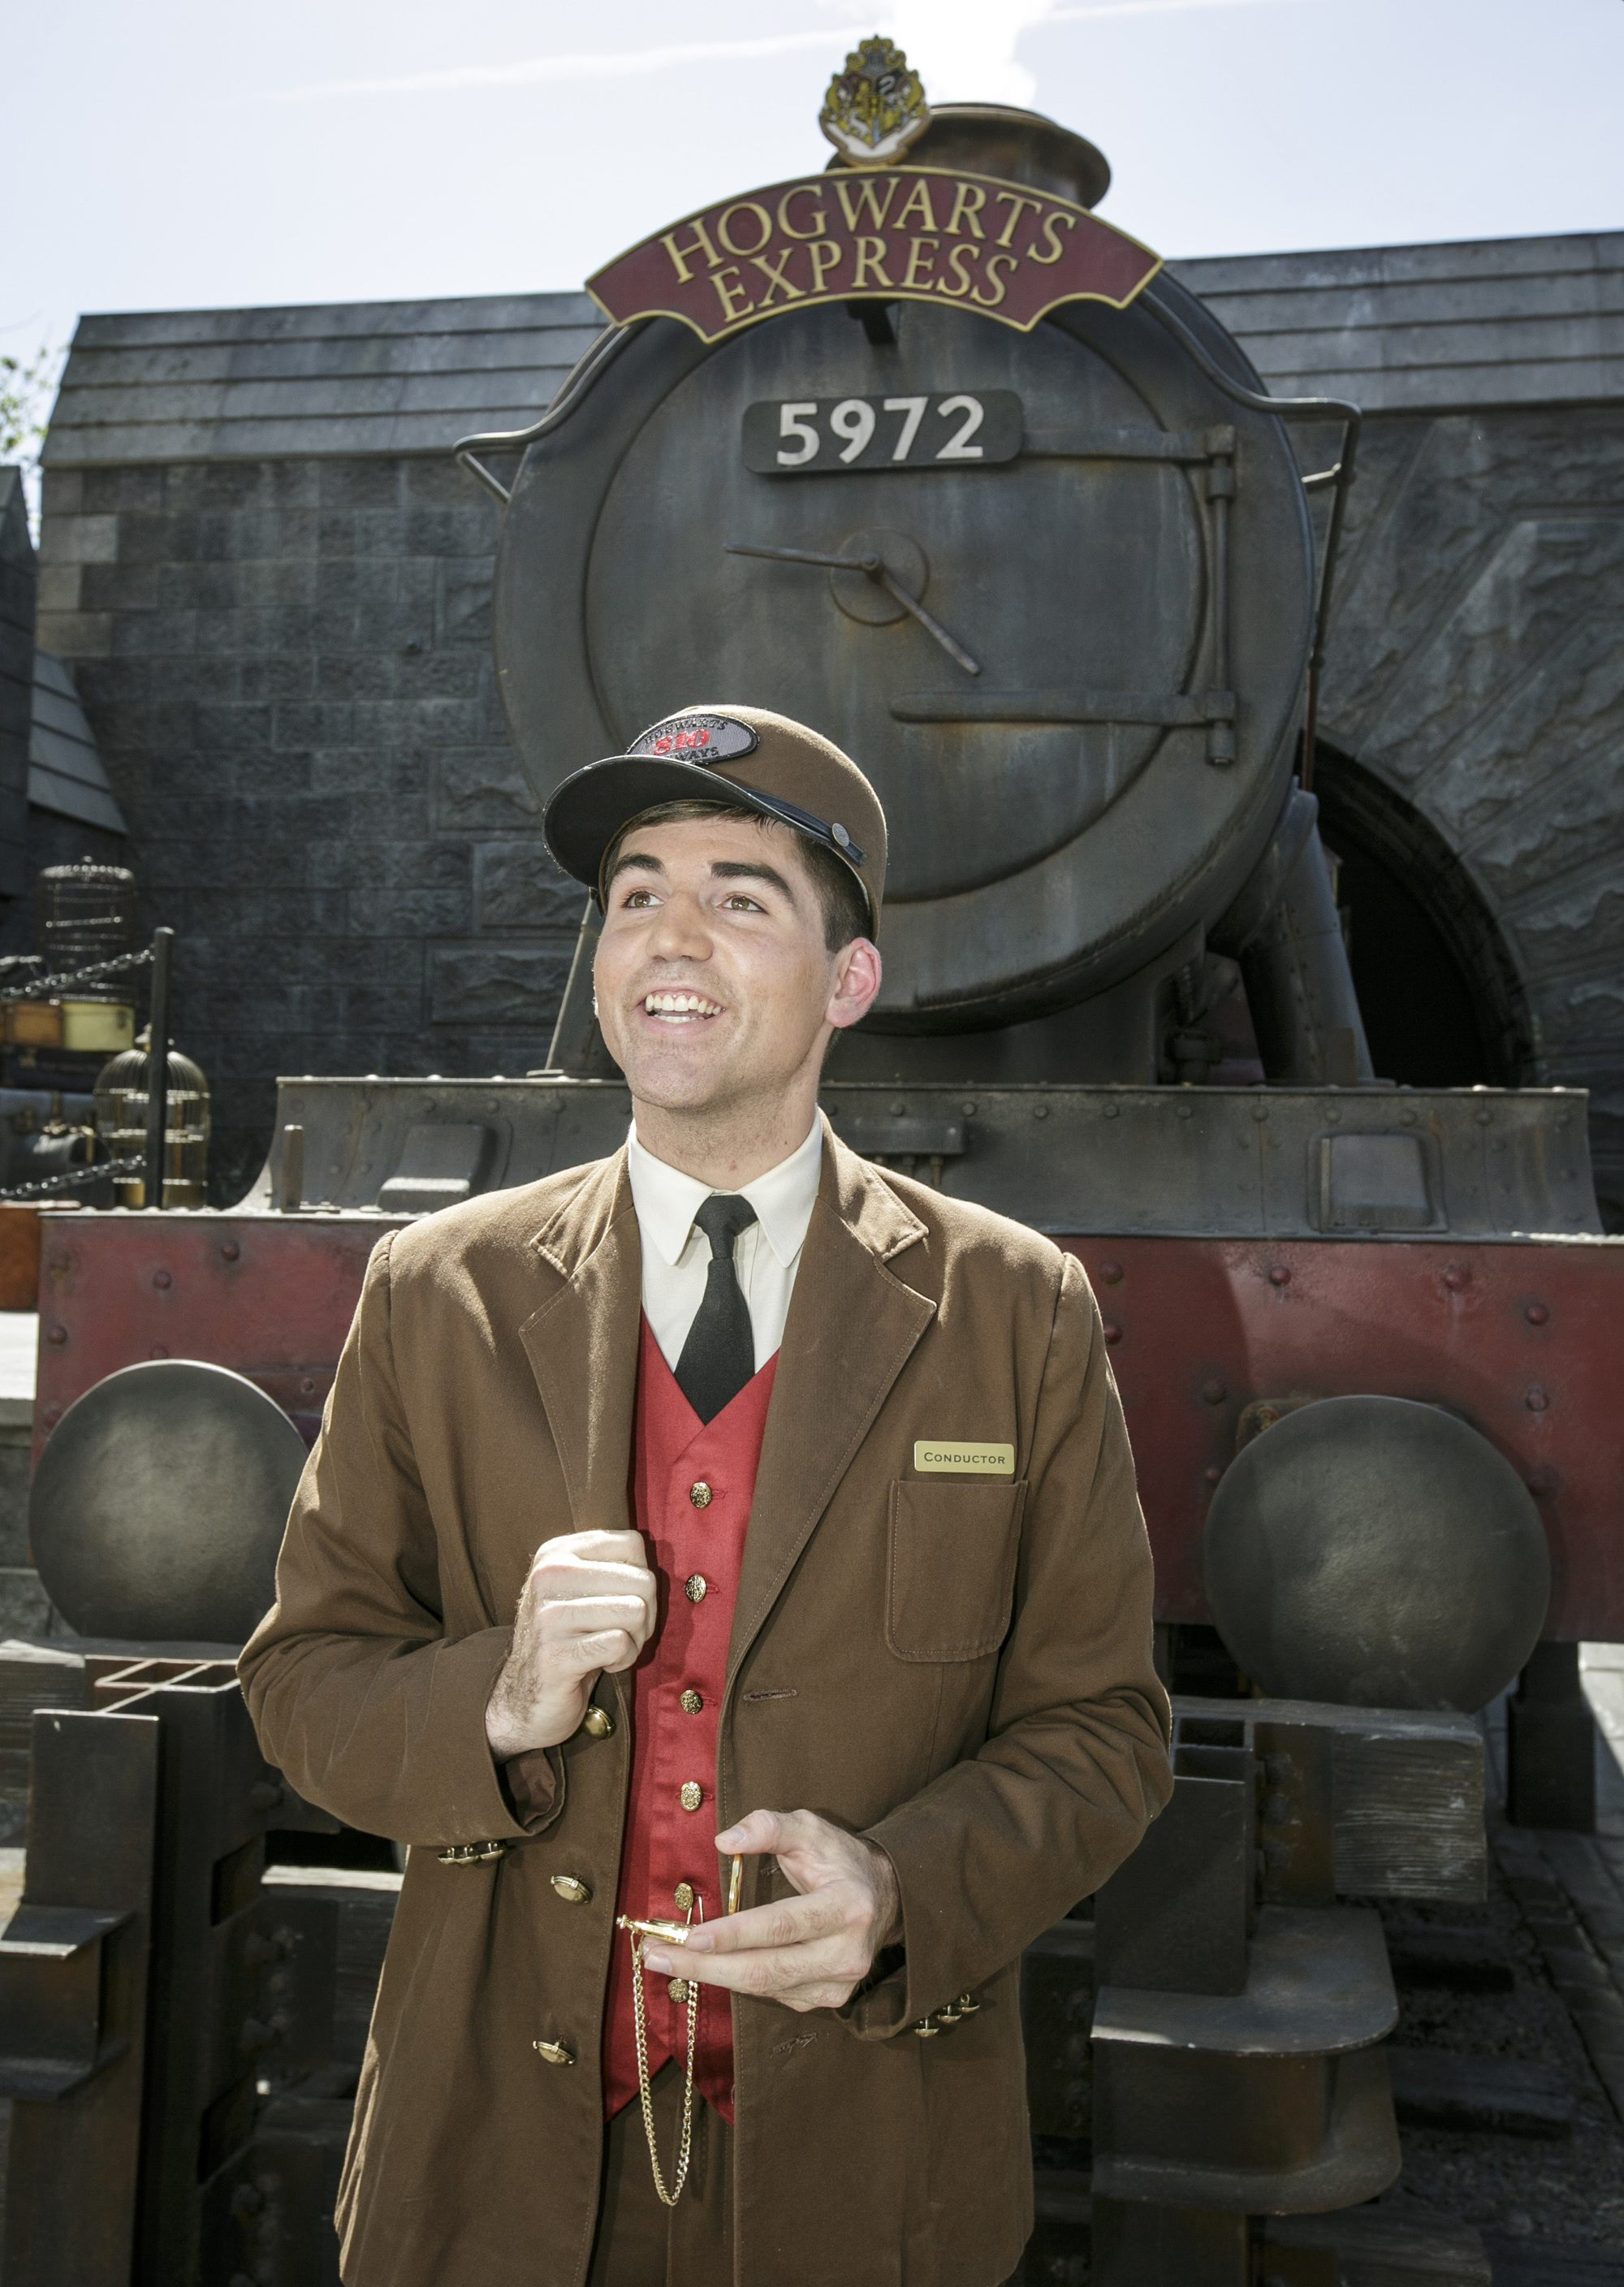 Get your photo in front of Hogwarts Express at the Wizarding World of Harry Potter at Universal Hollywood